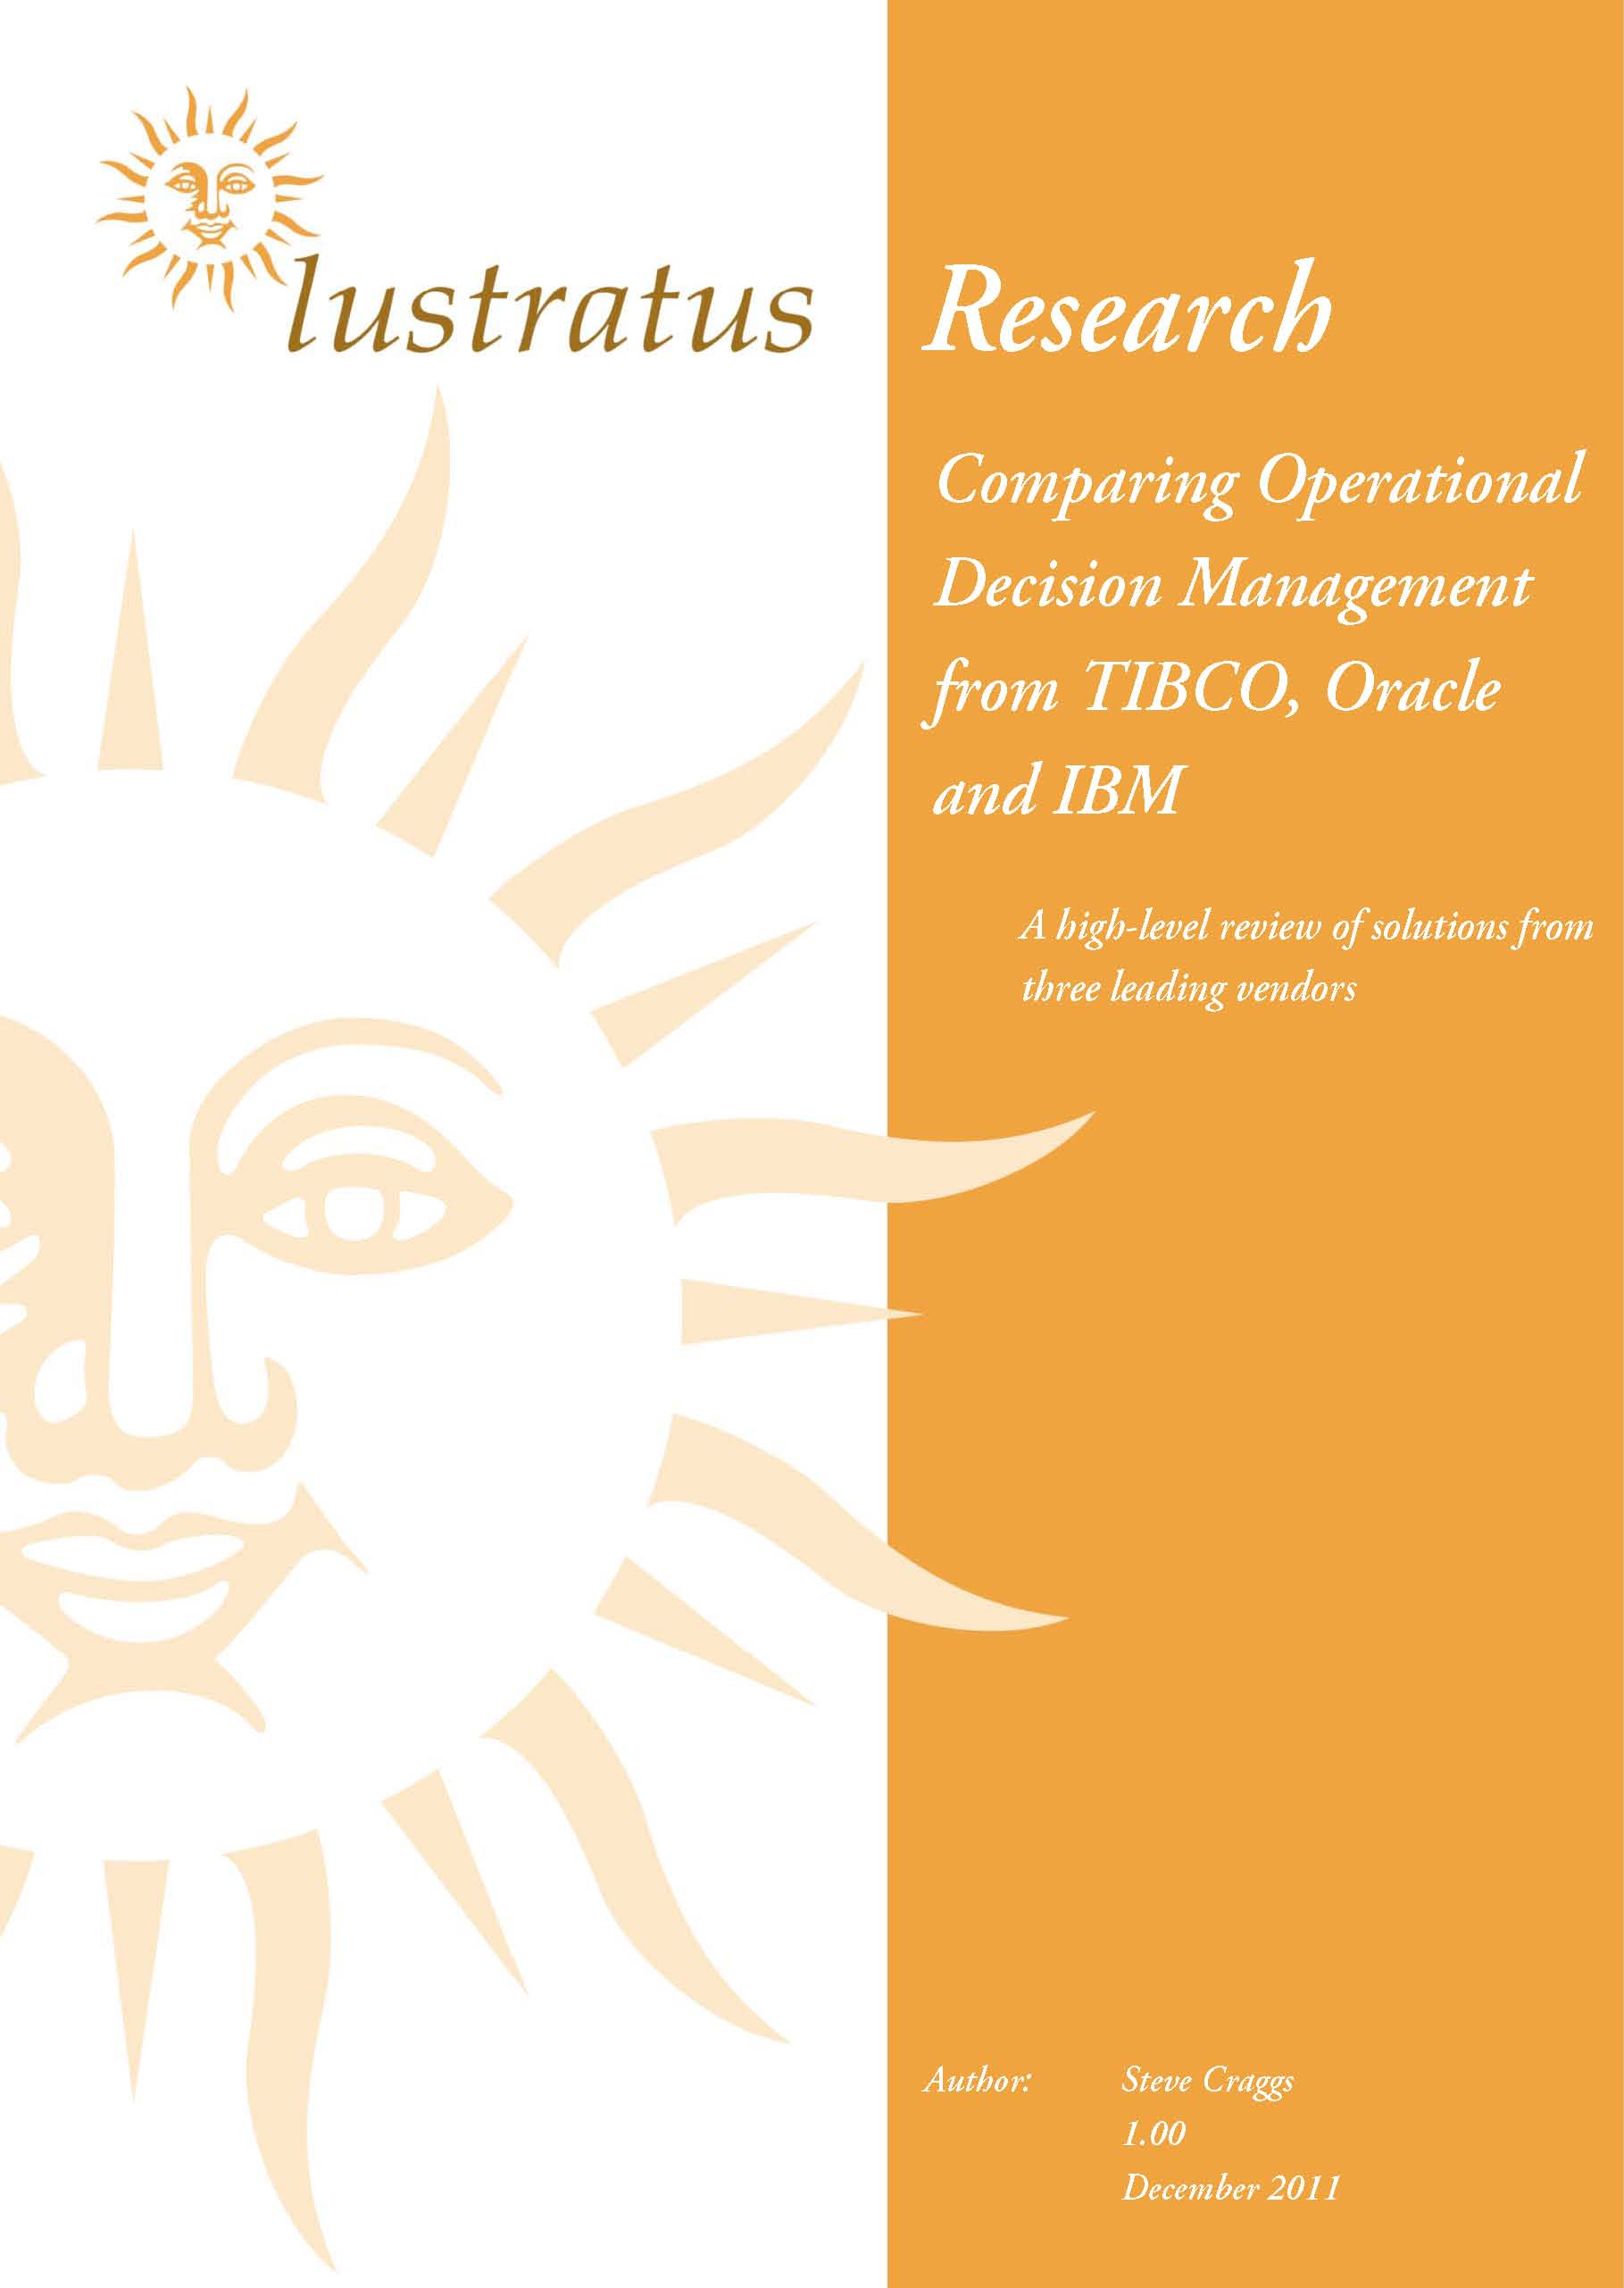 Pages from Comparing ODM from TIBCO, Oracle and IBM